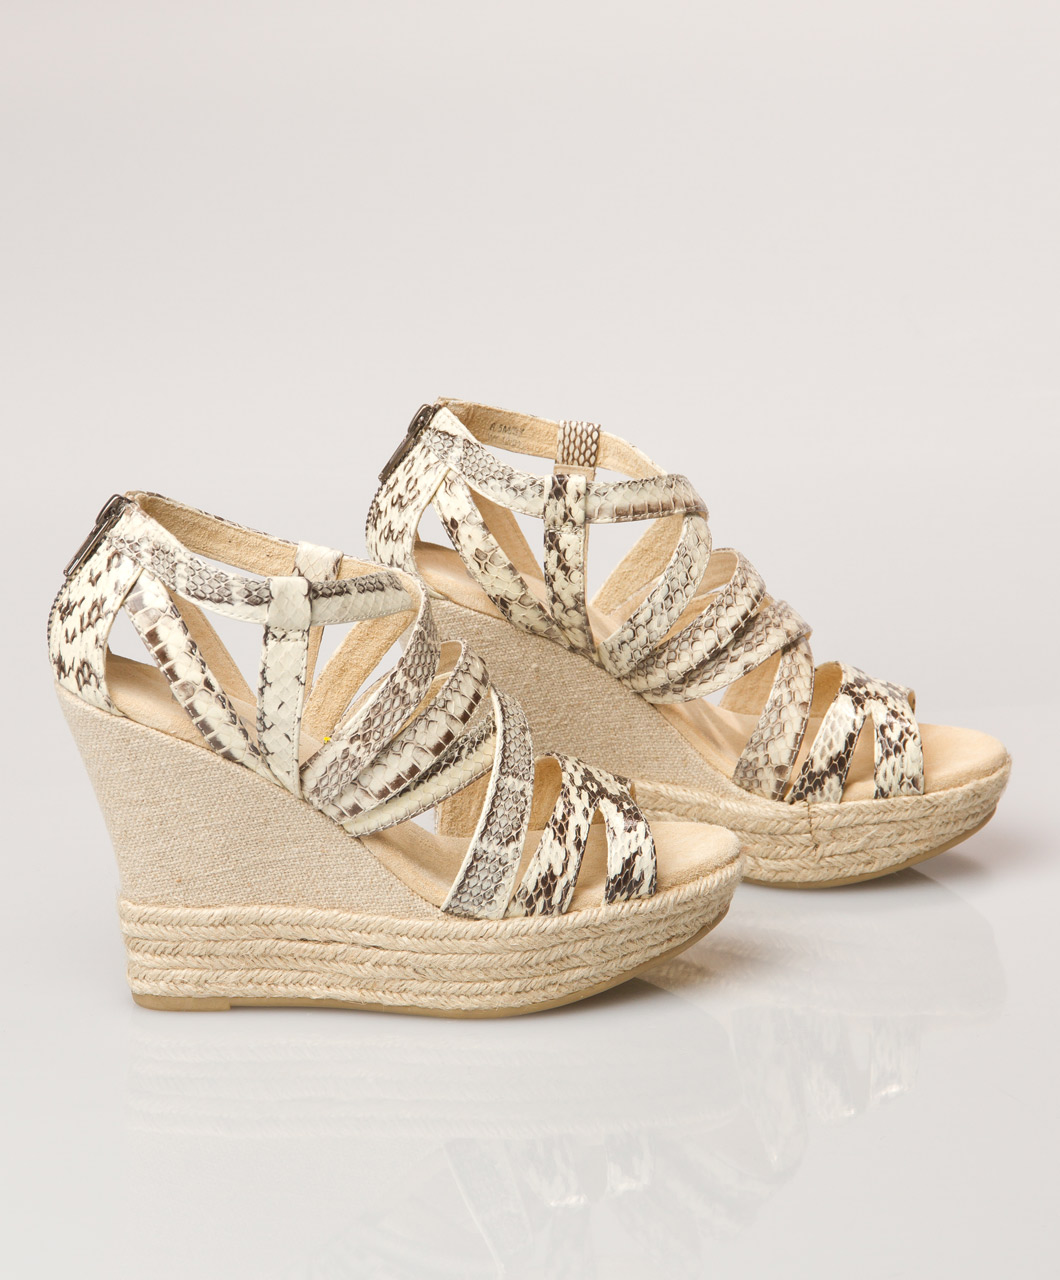 DKNY Kendra Espadrille Wedges - Natural